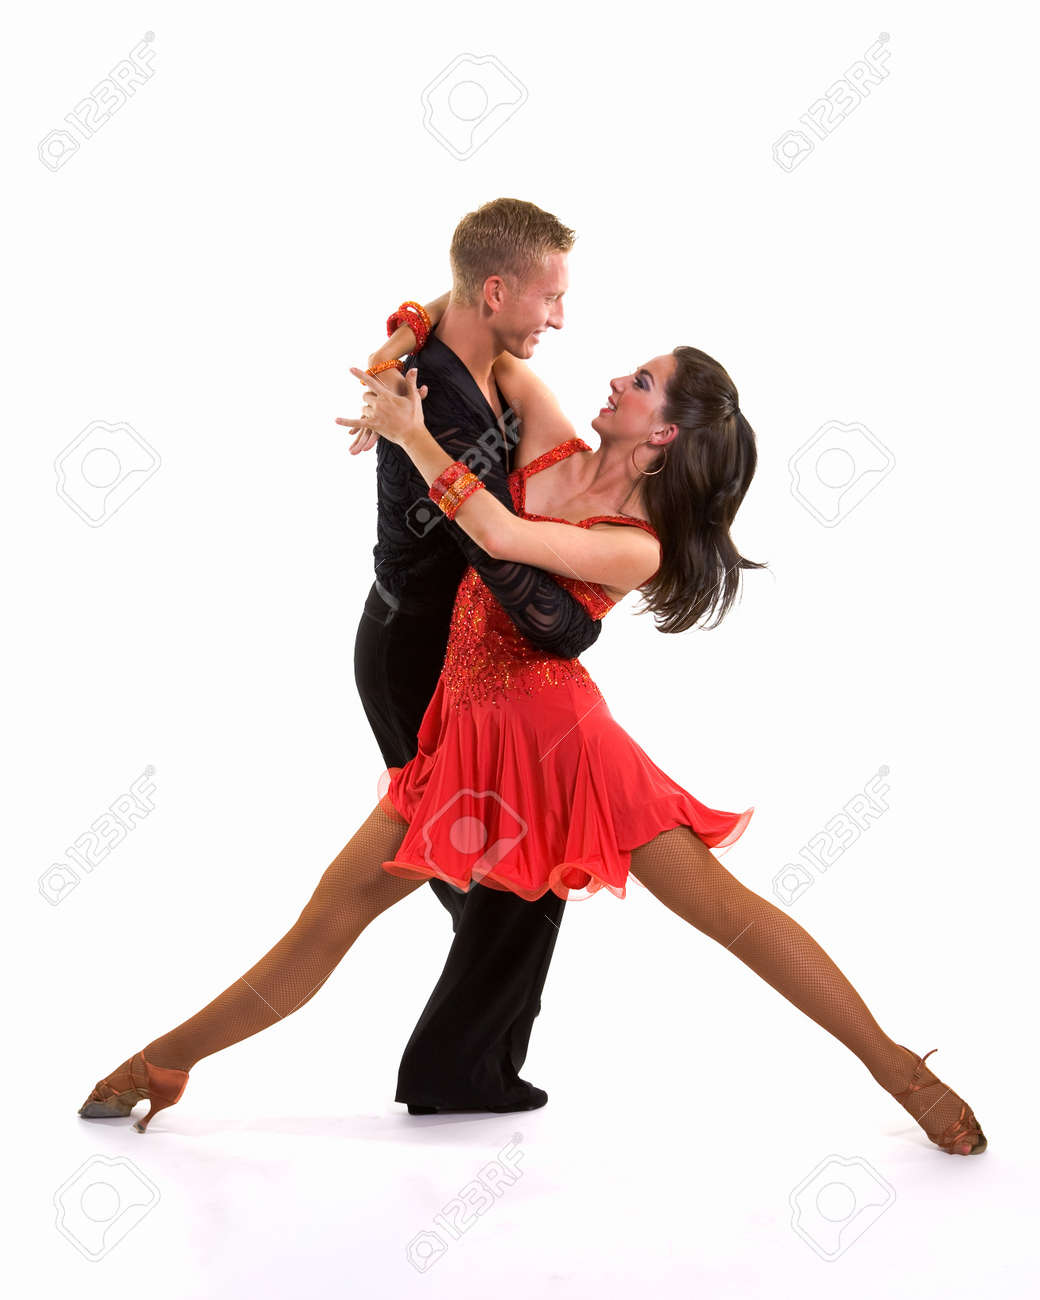 Young ballroom dancers in formal costumes posing against a solid background in a studio Stock Photo - 9621435